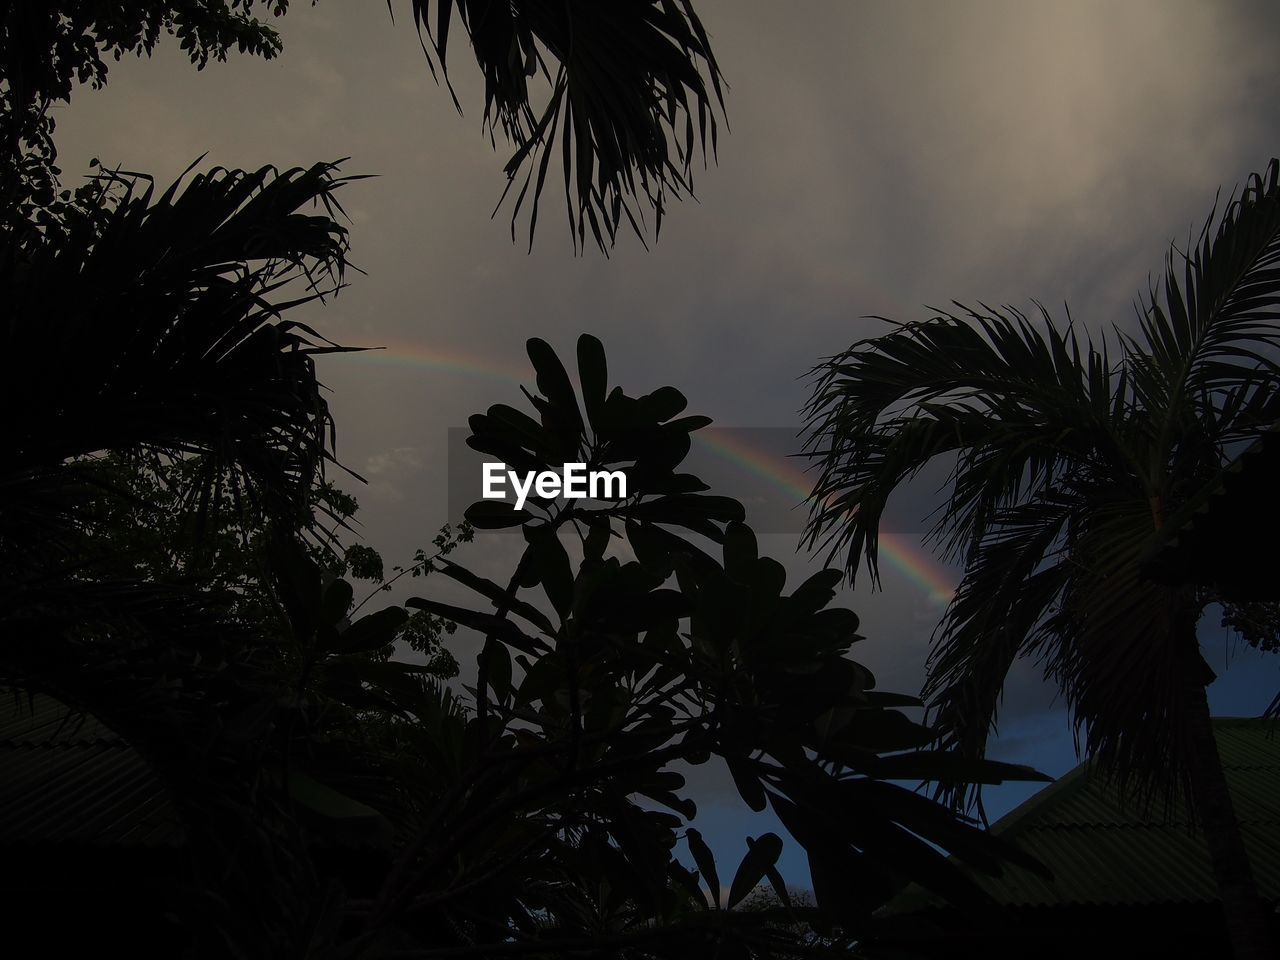 tropical climate, plant, palm tree, growth, tree, sky, silhouette, leaf, beauty in nature, nature, low angle view, no people, palm leaf, tranquility, sunset, scenics - nature, tranquil scene, cloud - sky, plant part, outdoors, coconut palm tree, tropical tree